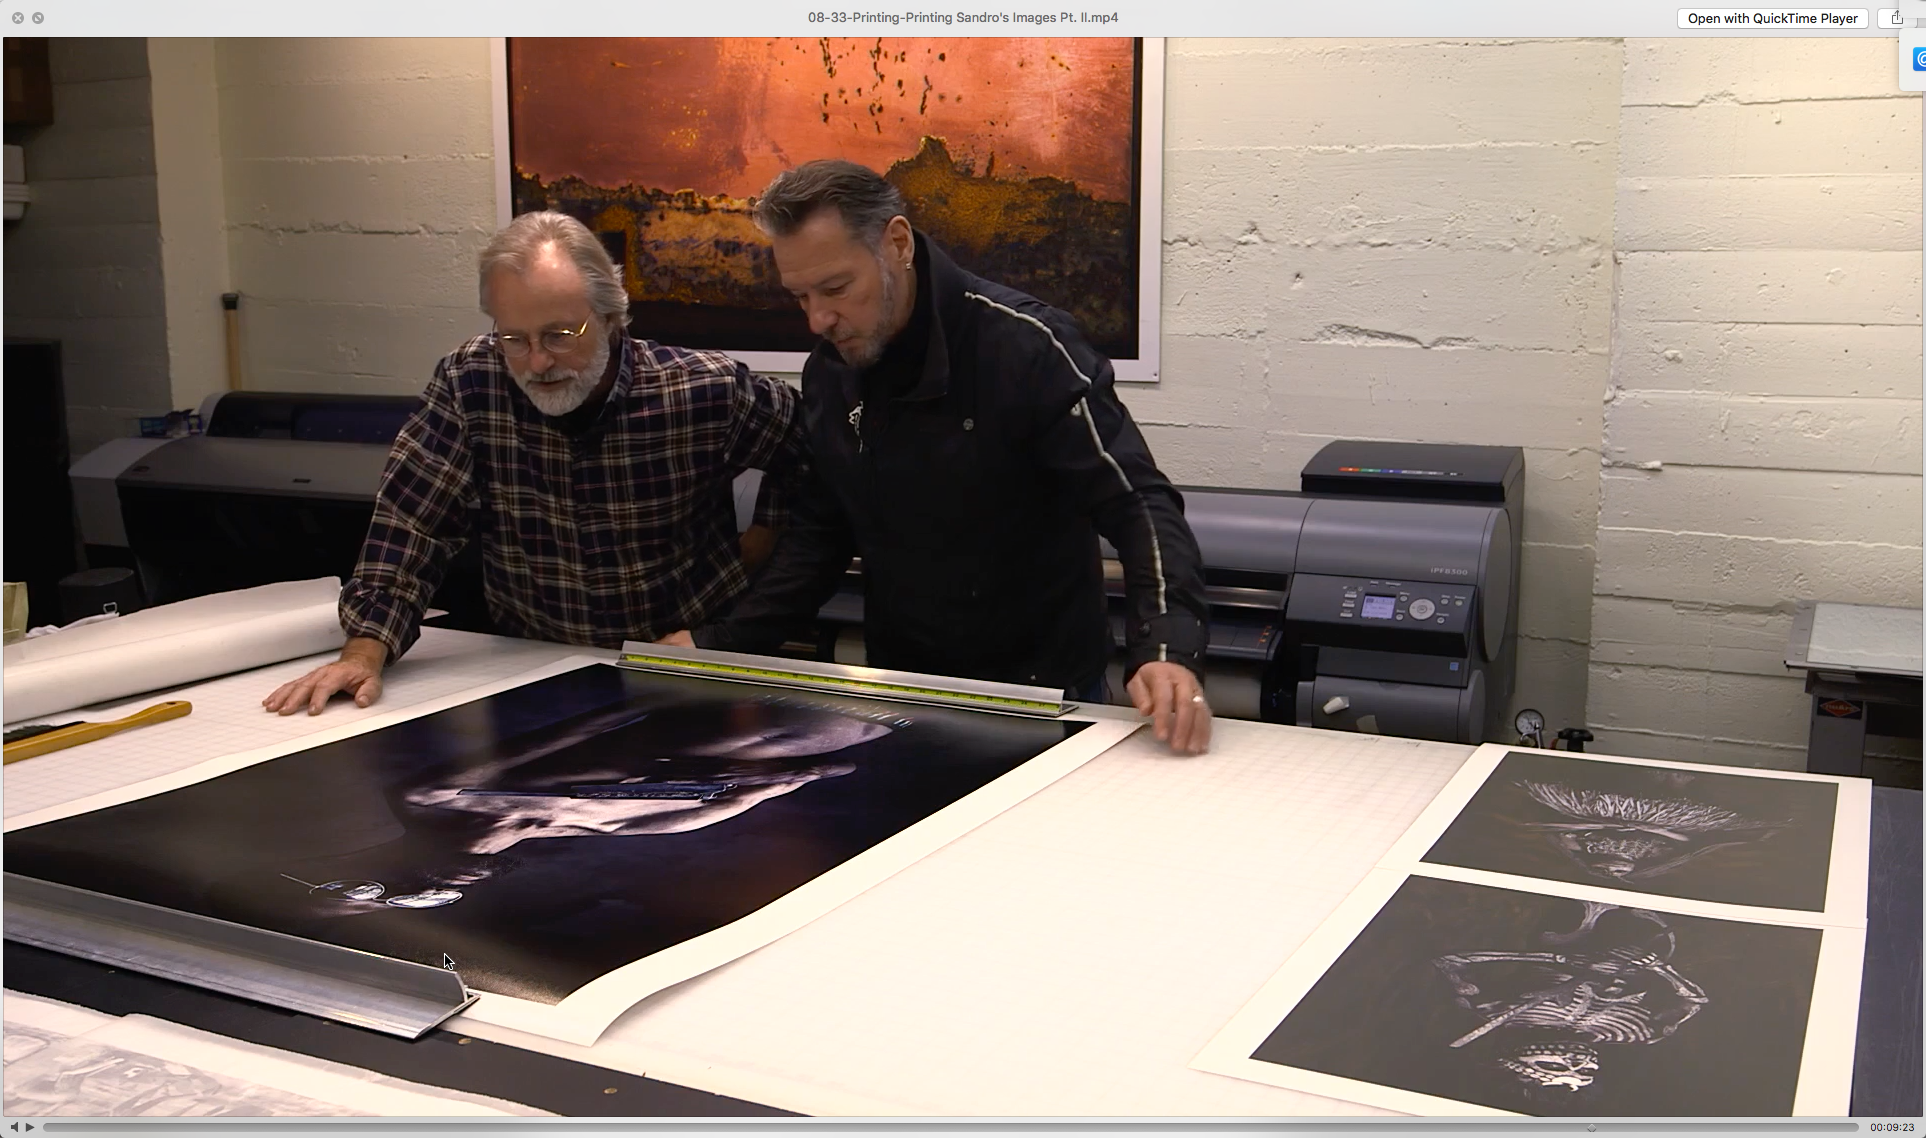 Sandro and Jon inspecting a large format print. As an interesting side-note, this image, which was shot with available light and was not composited, is one of my favorite images of the entire series.